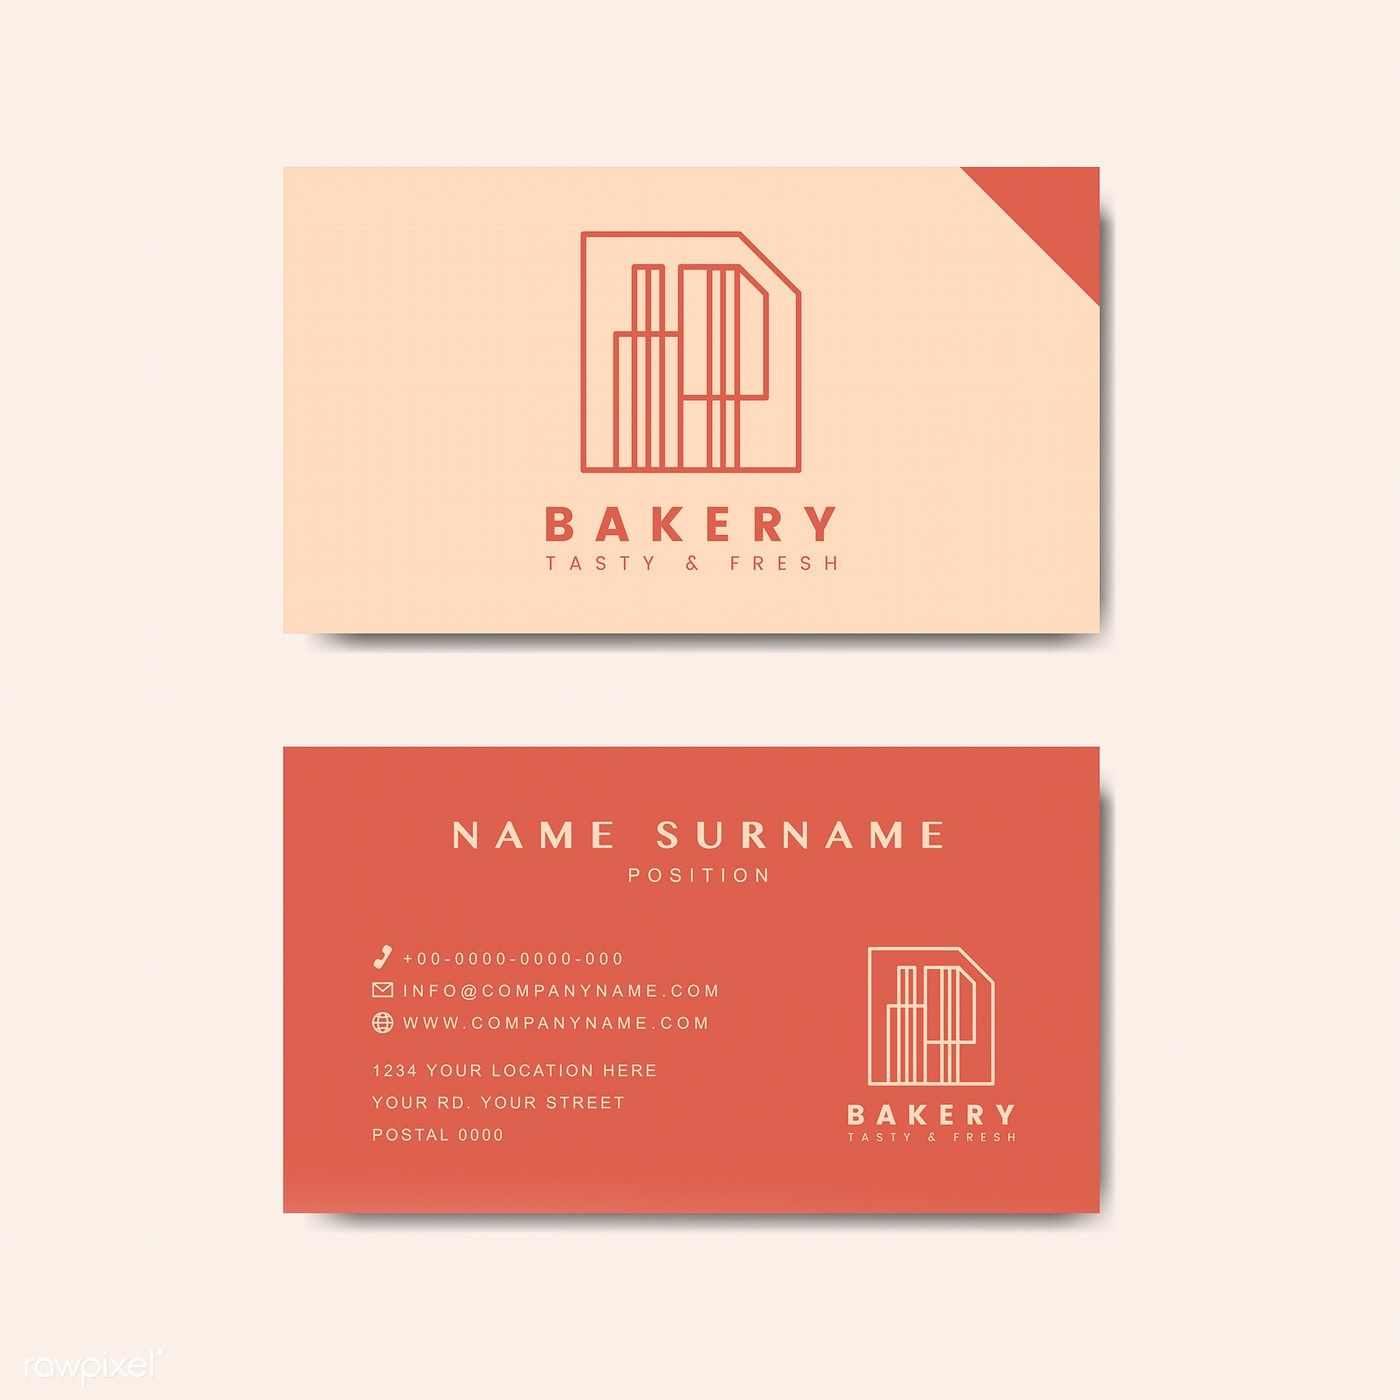 Coffee Shop Business Card Template Vector Free Image By Rawpixel Com Aew In 2020 Business Card Mock Up Professional Business Card Design Business Card Design